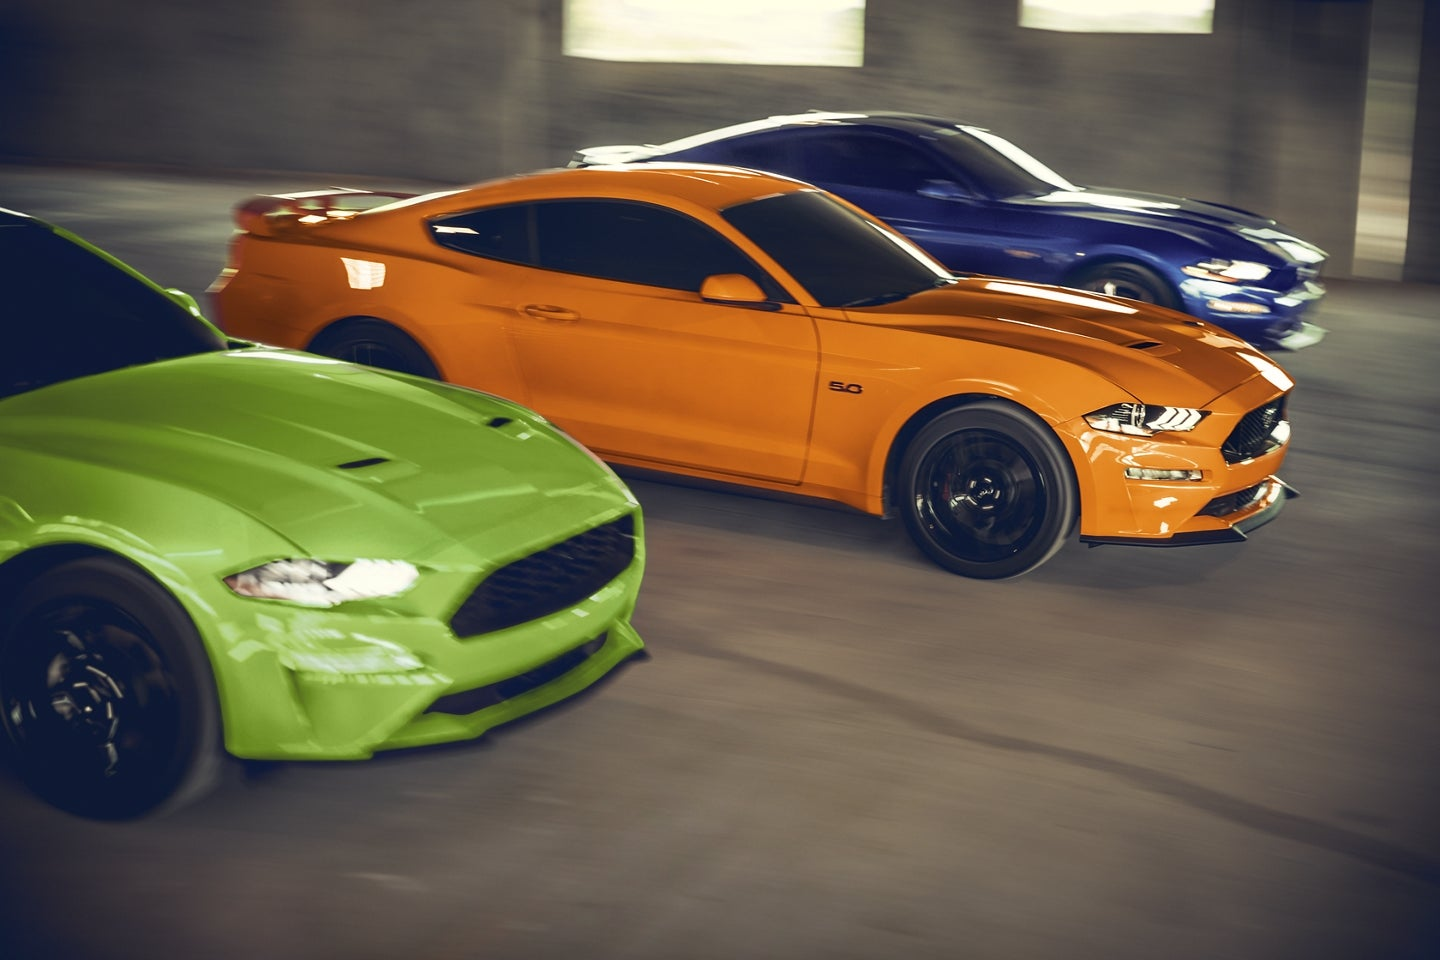 2020 ford mustang price specs highlights mckie ford rapid city sd 2020 ford mustang price specs highlights mckie ford rapid city sd